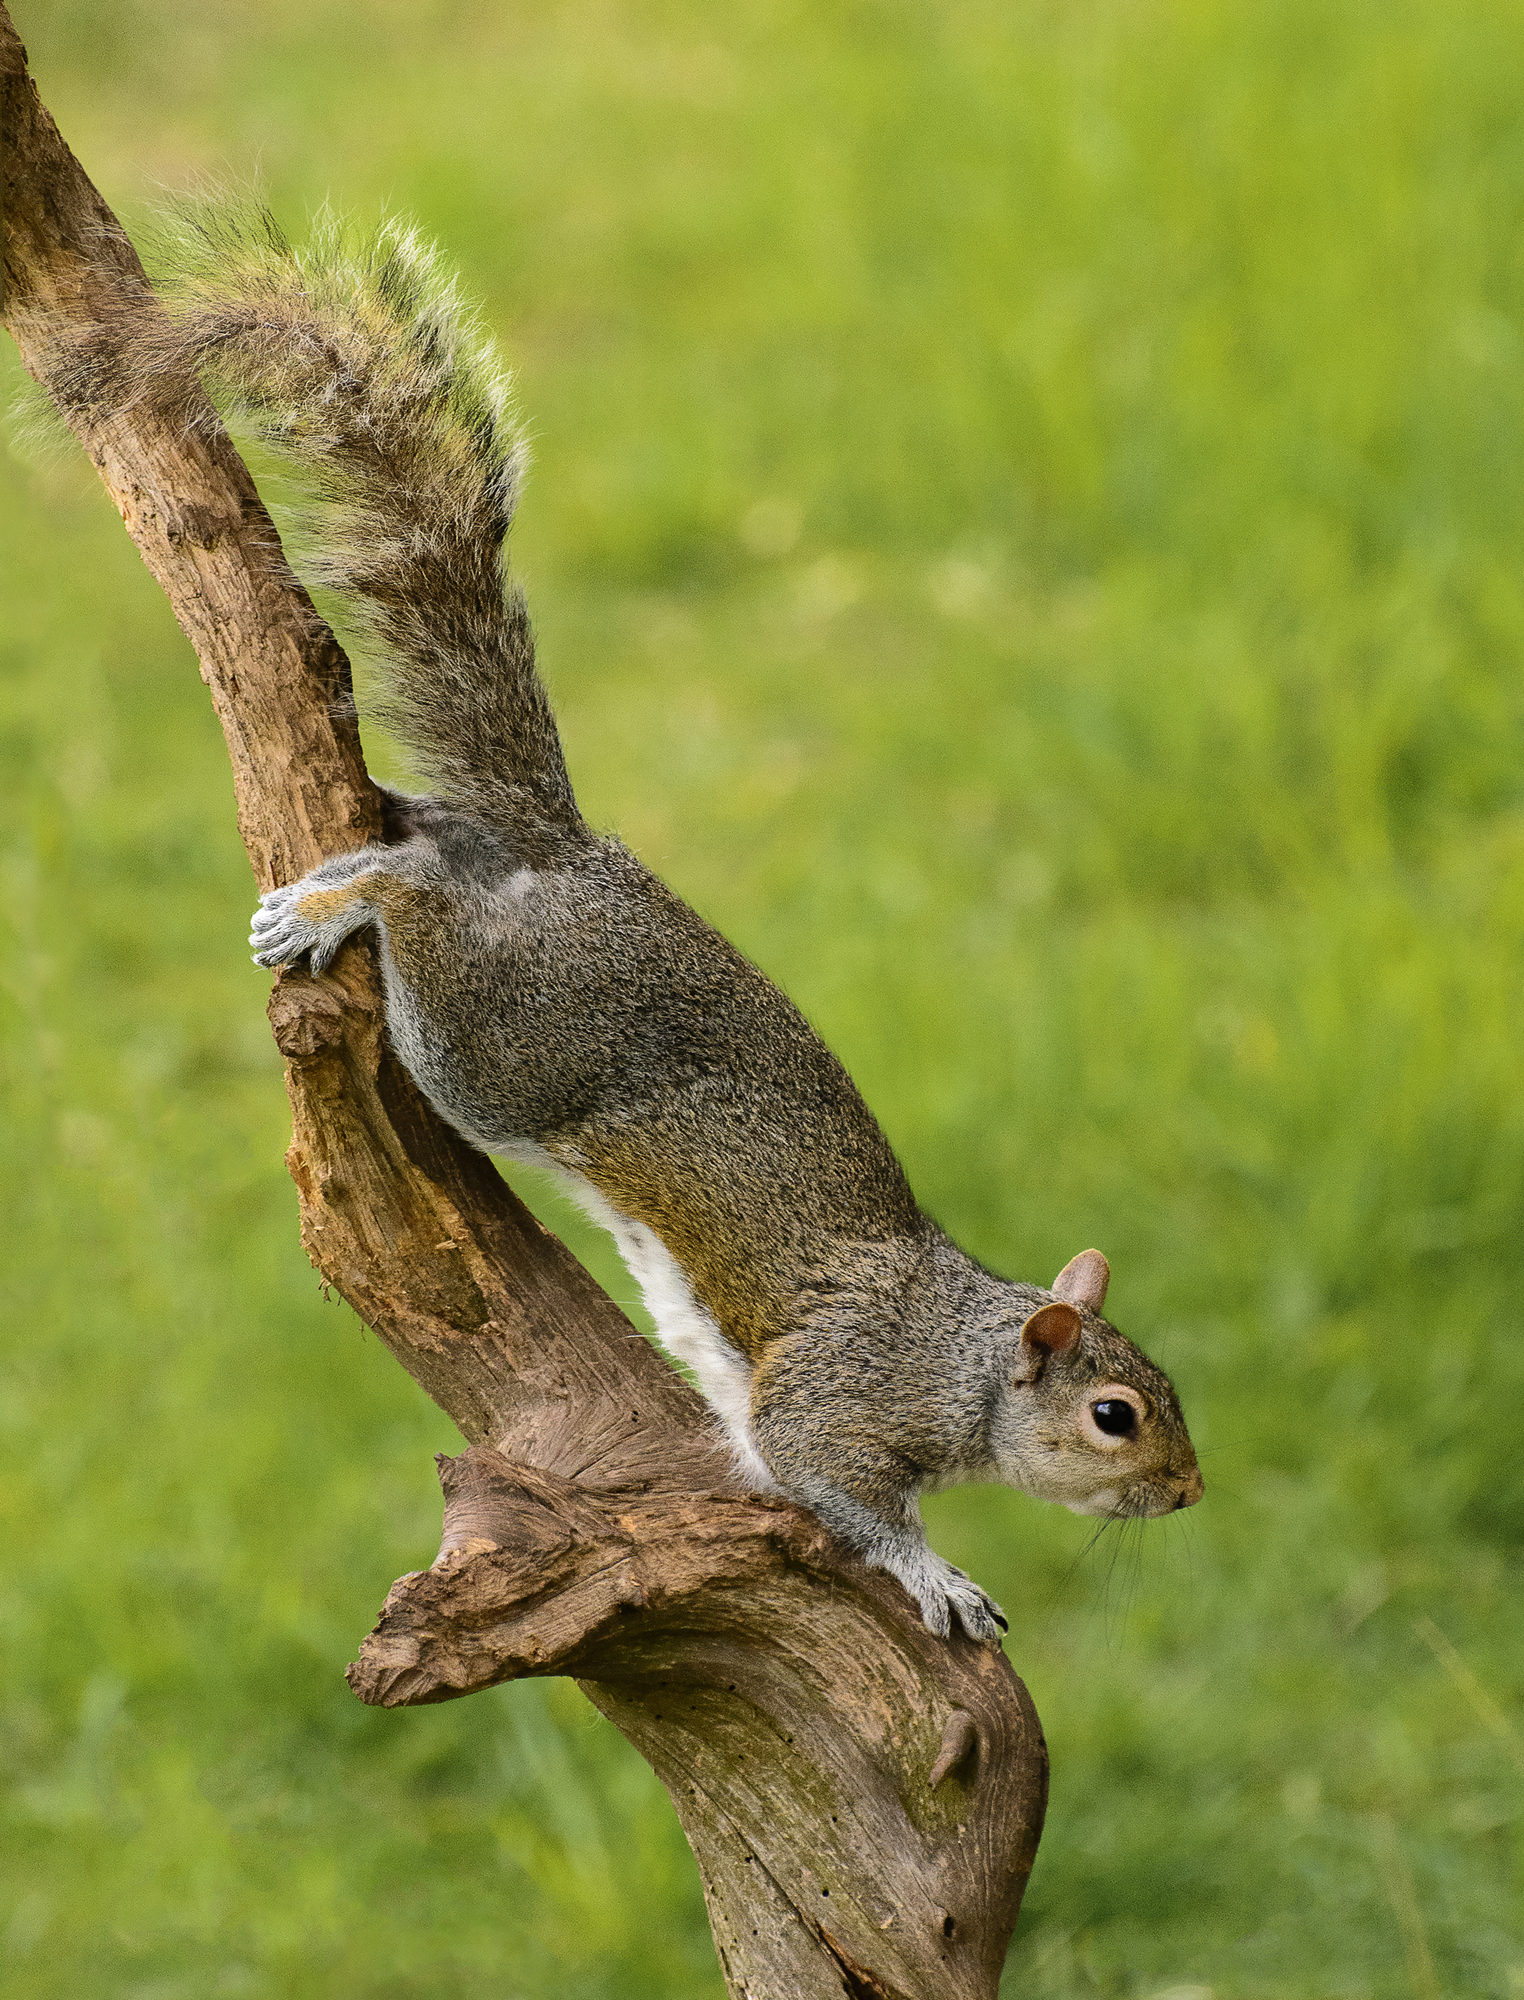 Grey squirrel clamber